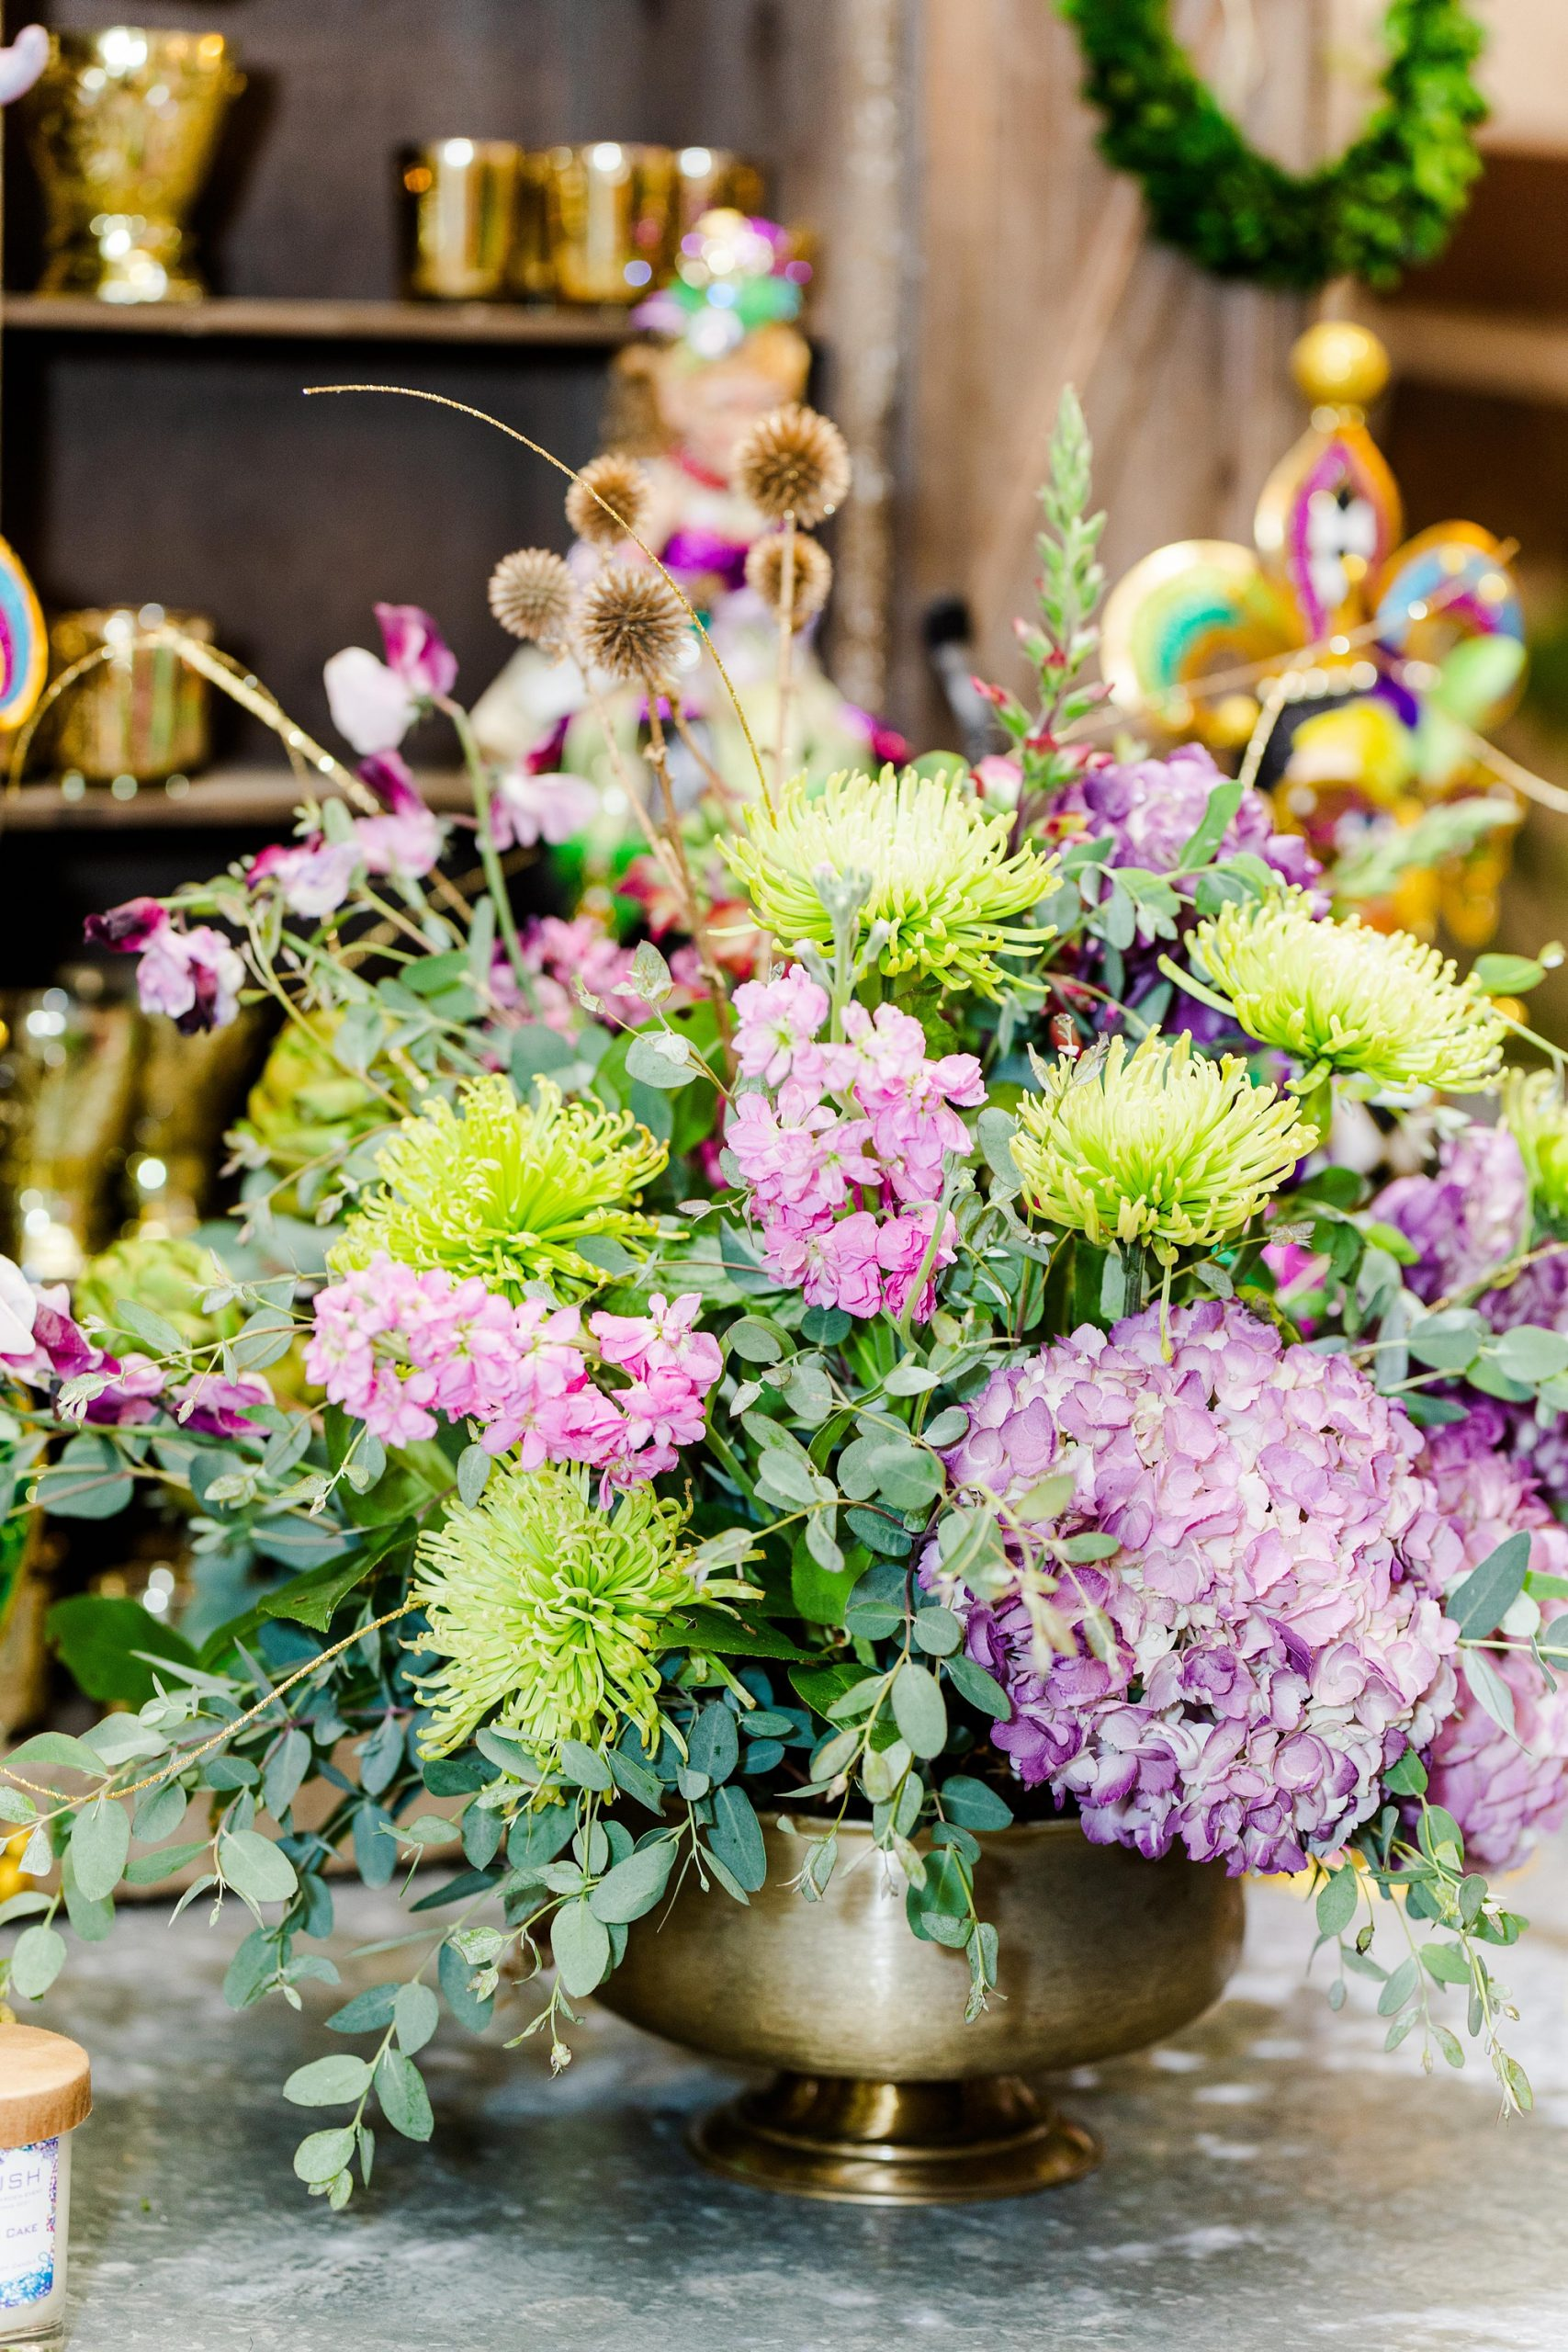 purple and green floral display for Mardi Gras